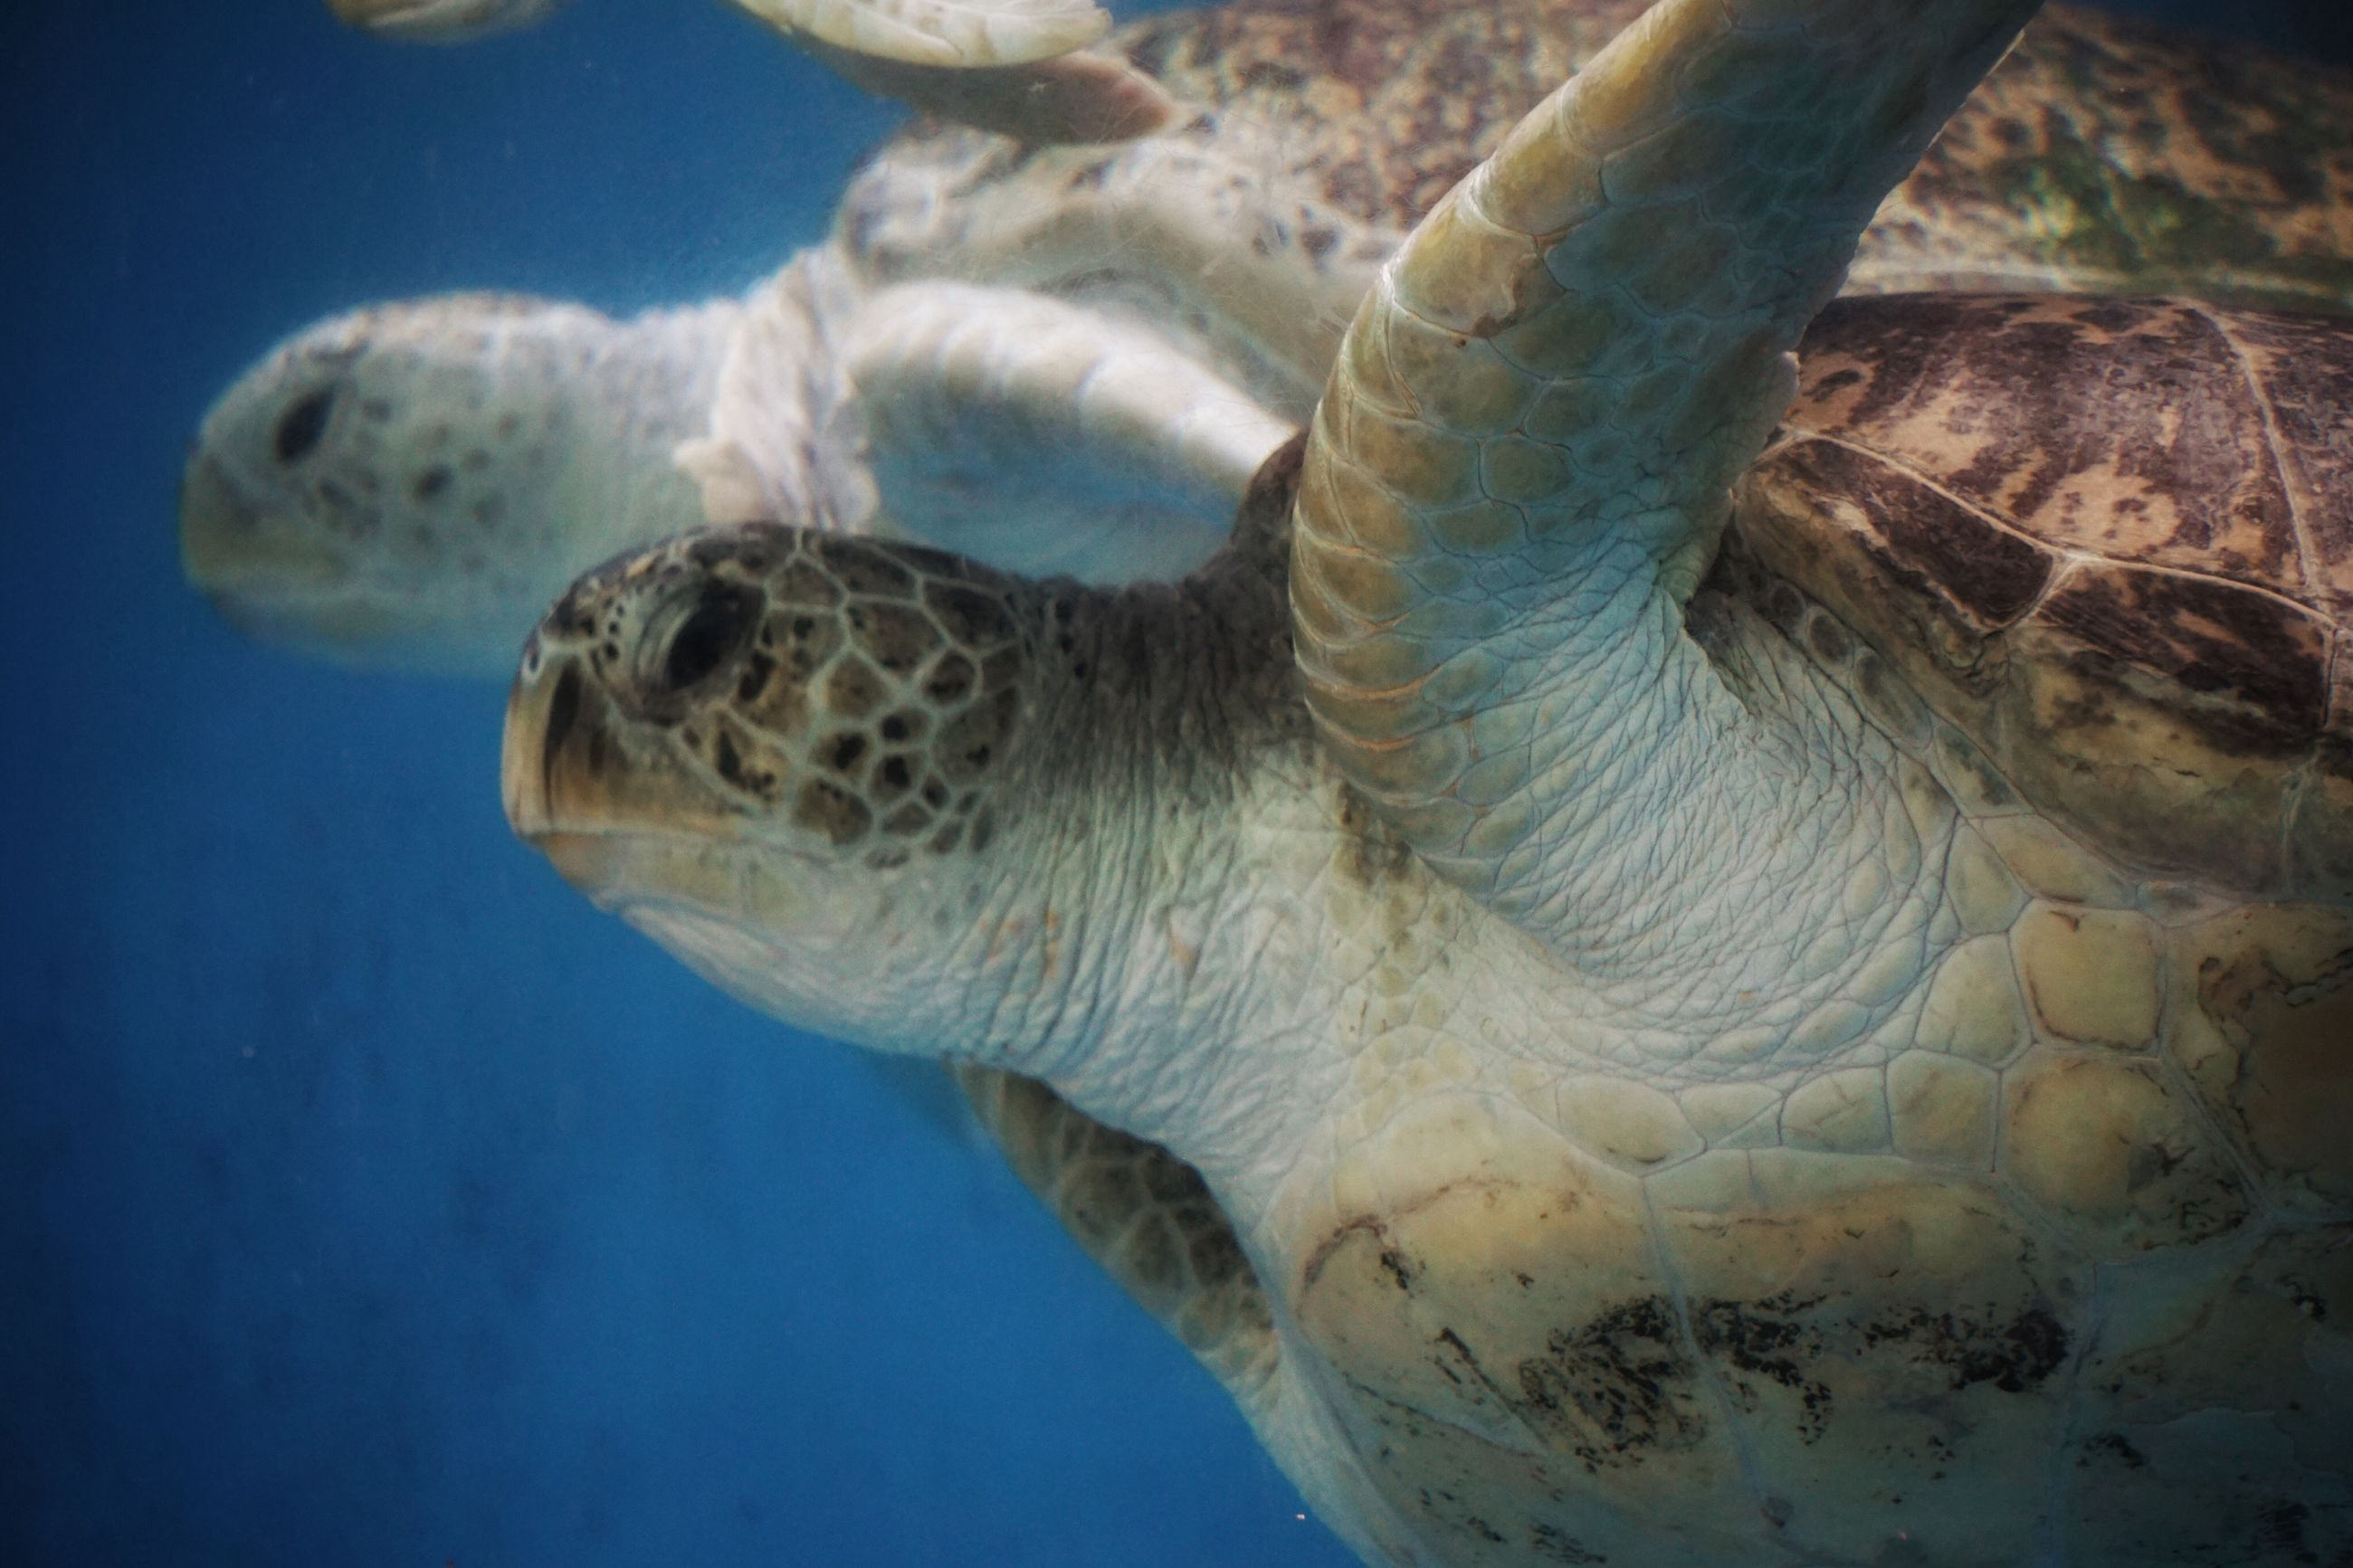 wildlife, close-up, sea life, nature, beauty in nature, natural pattern, no people, blue, outdoors, day, turtle, part of, animal body part, animal head, focus on foreground